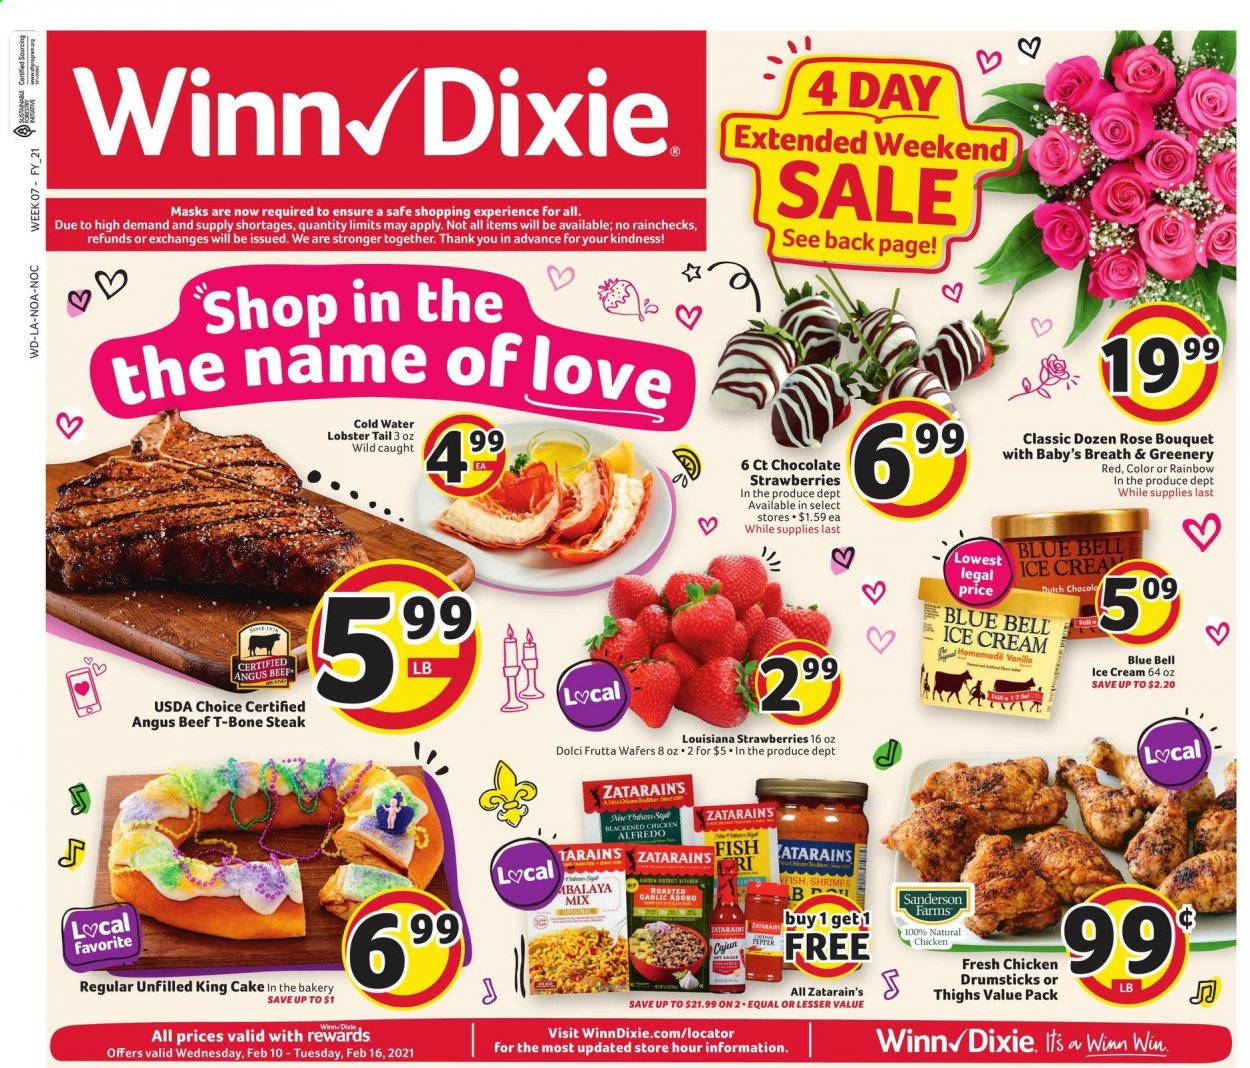 Winn Dixie Flyer - 02.10.2021 - 02.16.2021 - Sales products - garlic, strawberries, cake, chicken, chicken legs, beef meat, t-bone steak, steak, lobster, fish, shrimps, sauce, ice cream, wafers, chocolate, adobo sauce, alfredo sauce, hot sauce, water. Page 1.